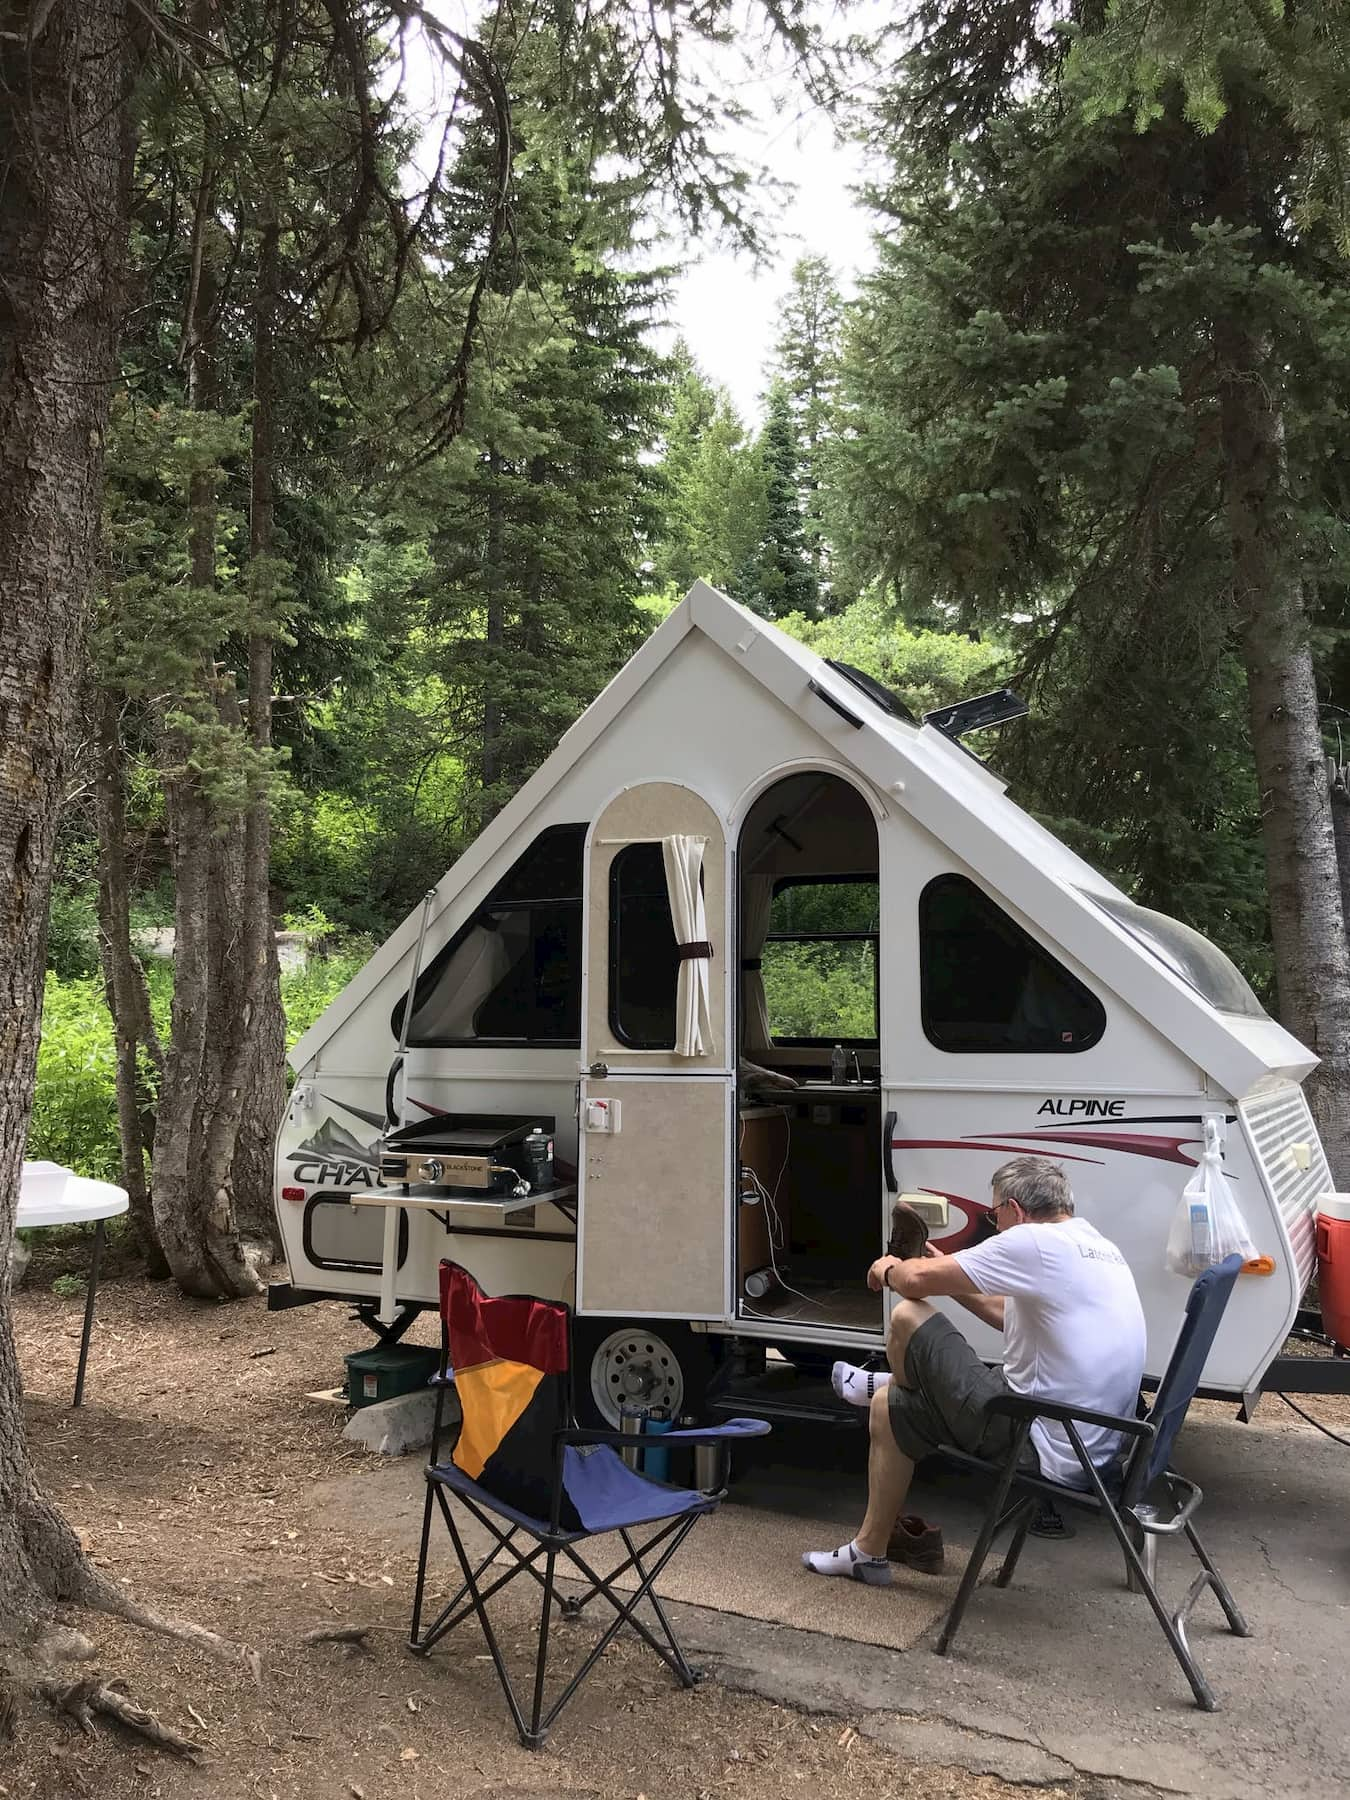 Man sitting in camping chair in front of A-line trailer in the forest.